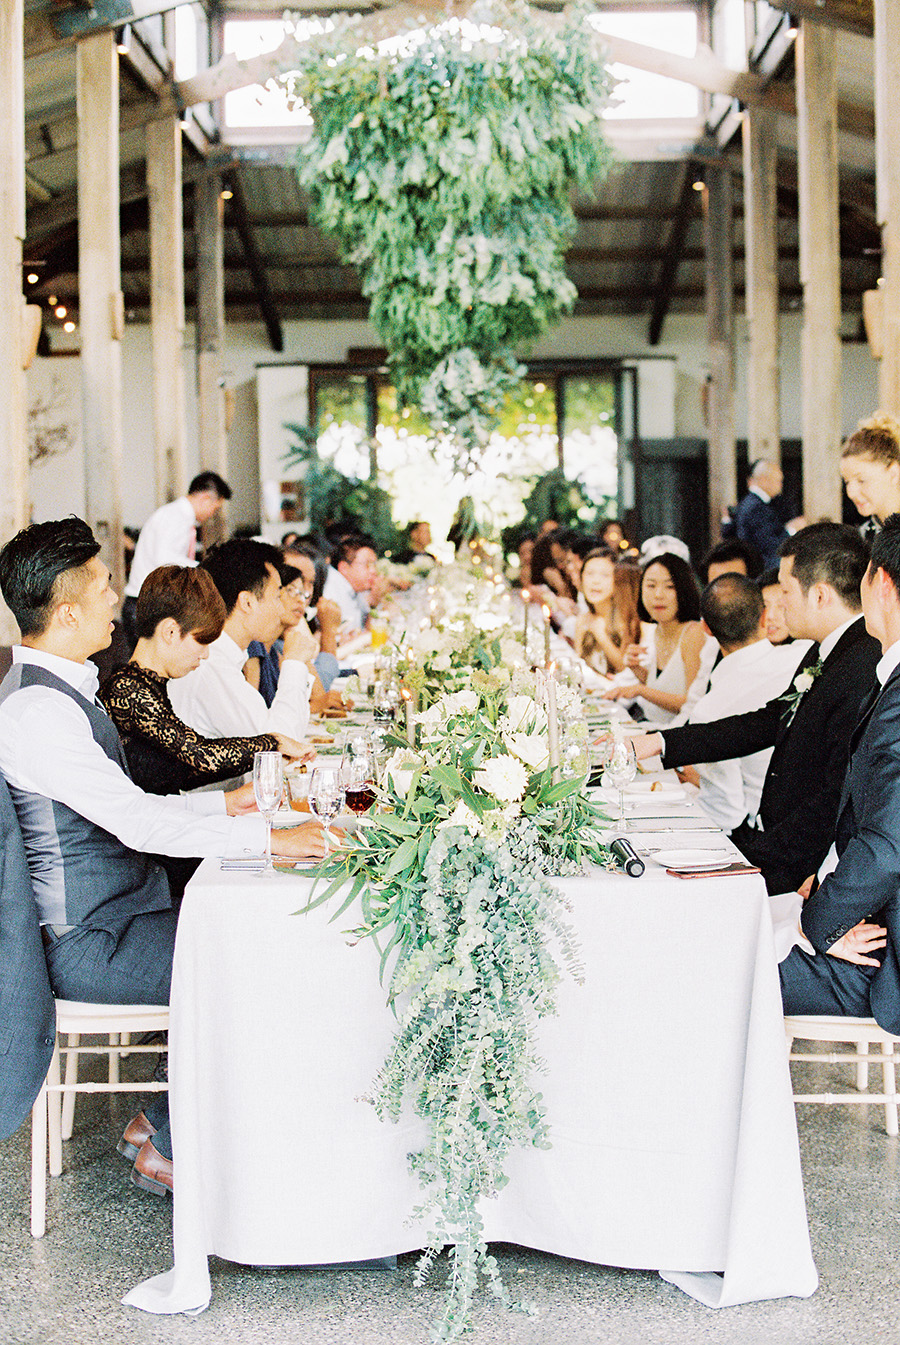 GENESIS TONY MELBOURNE WEDDING_AUSTRALIA WEDDING_YARRA VALLEY-31.jpg